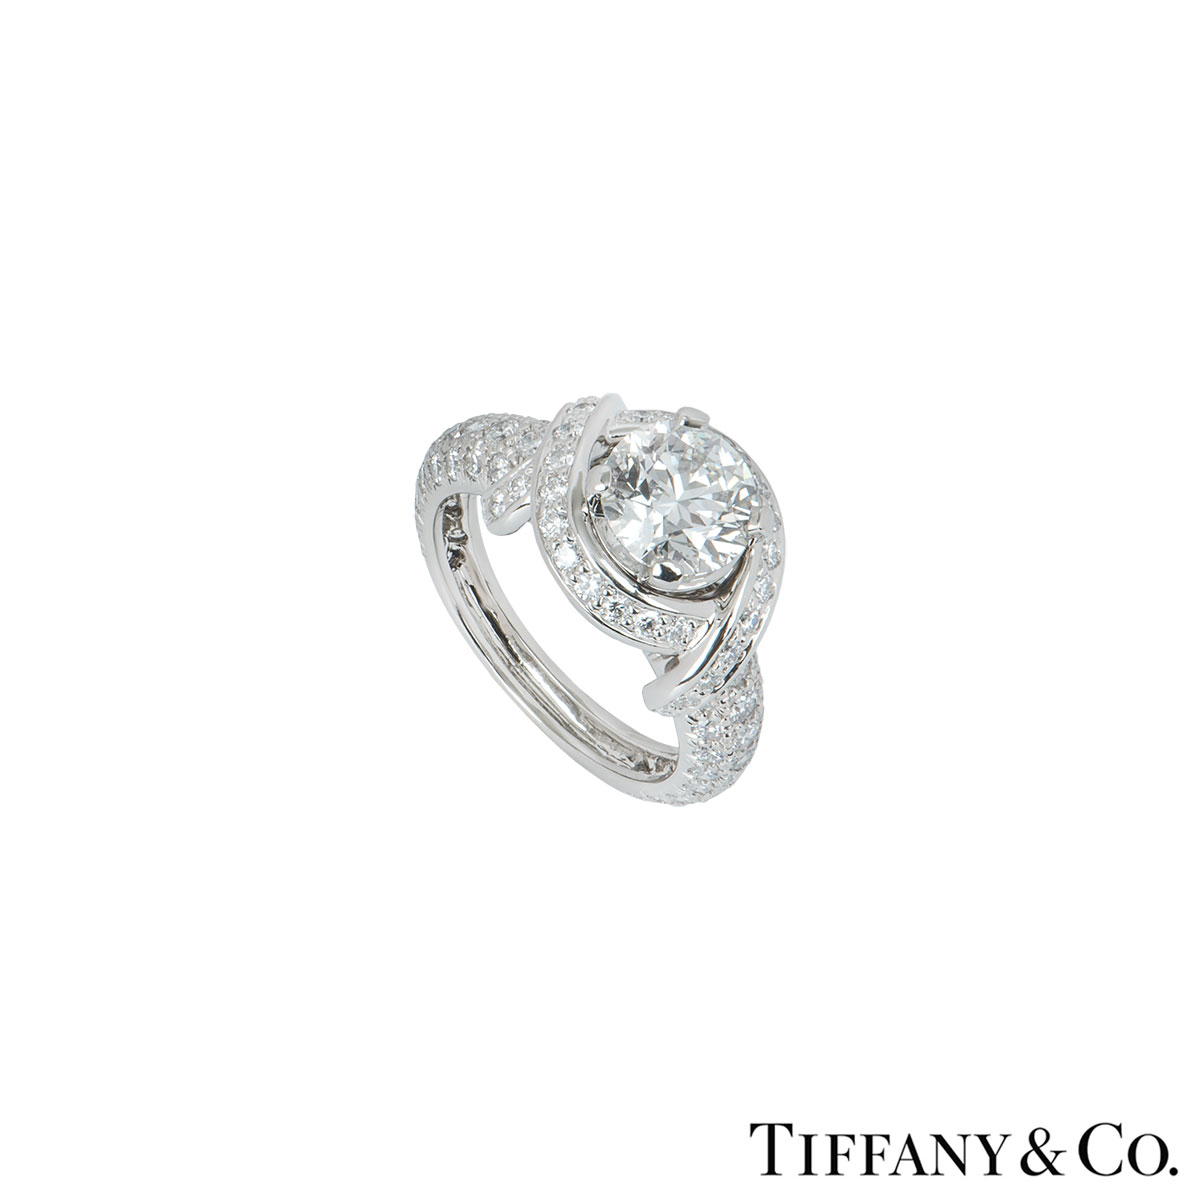 Tiffany & Co. Platinum Diamond Schlumberger Ring 1.55ct G/VVS2